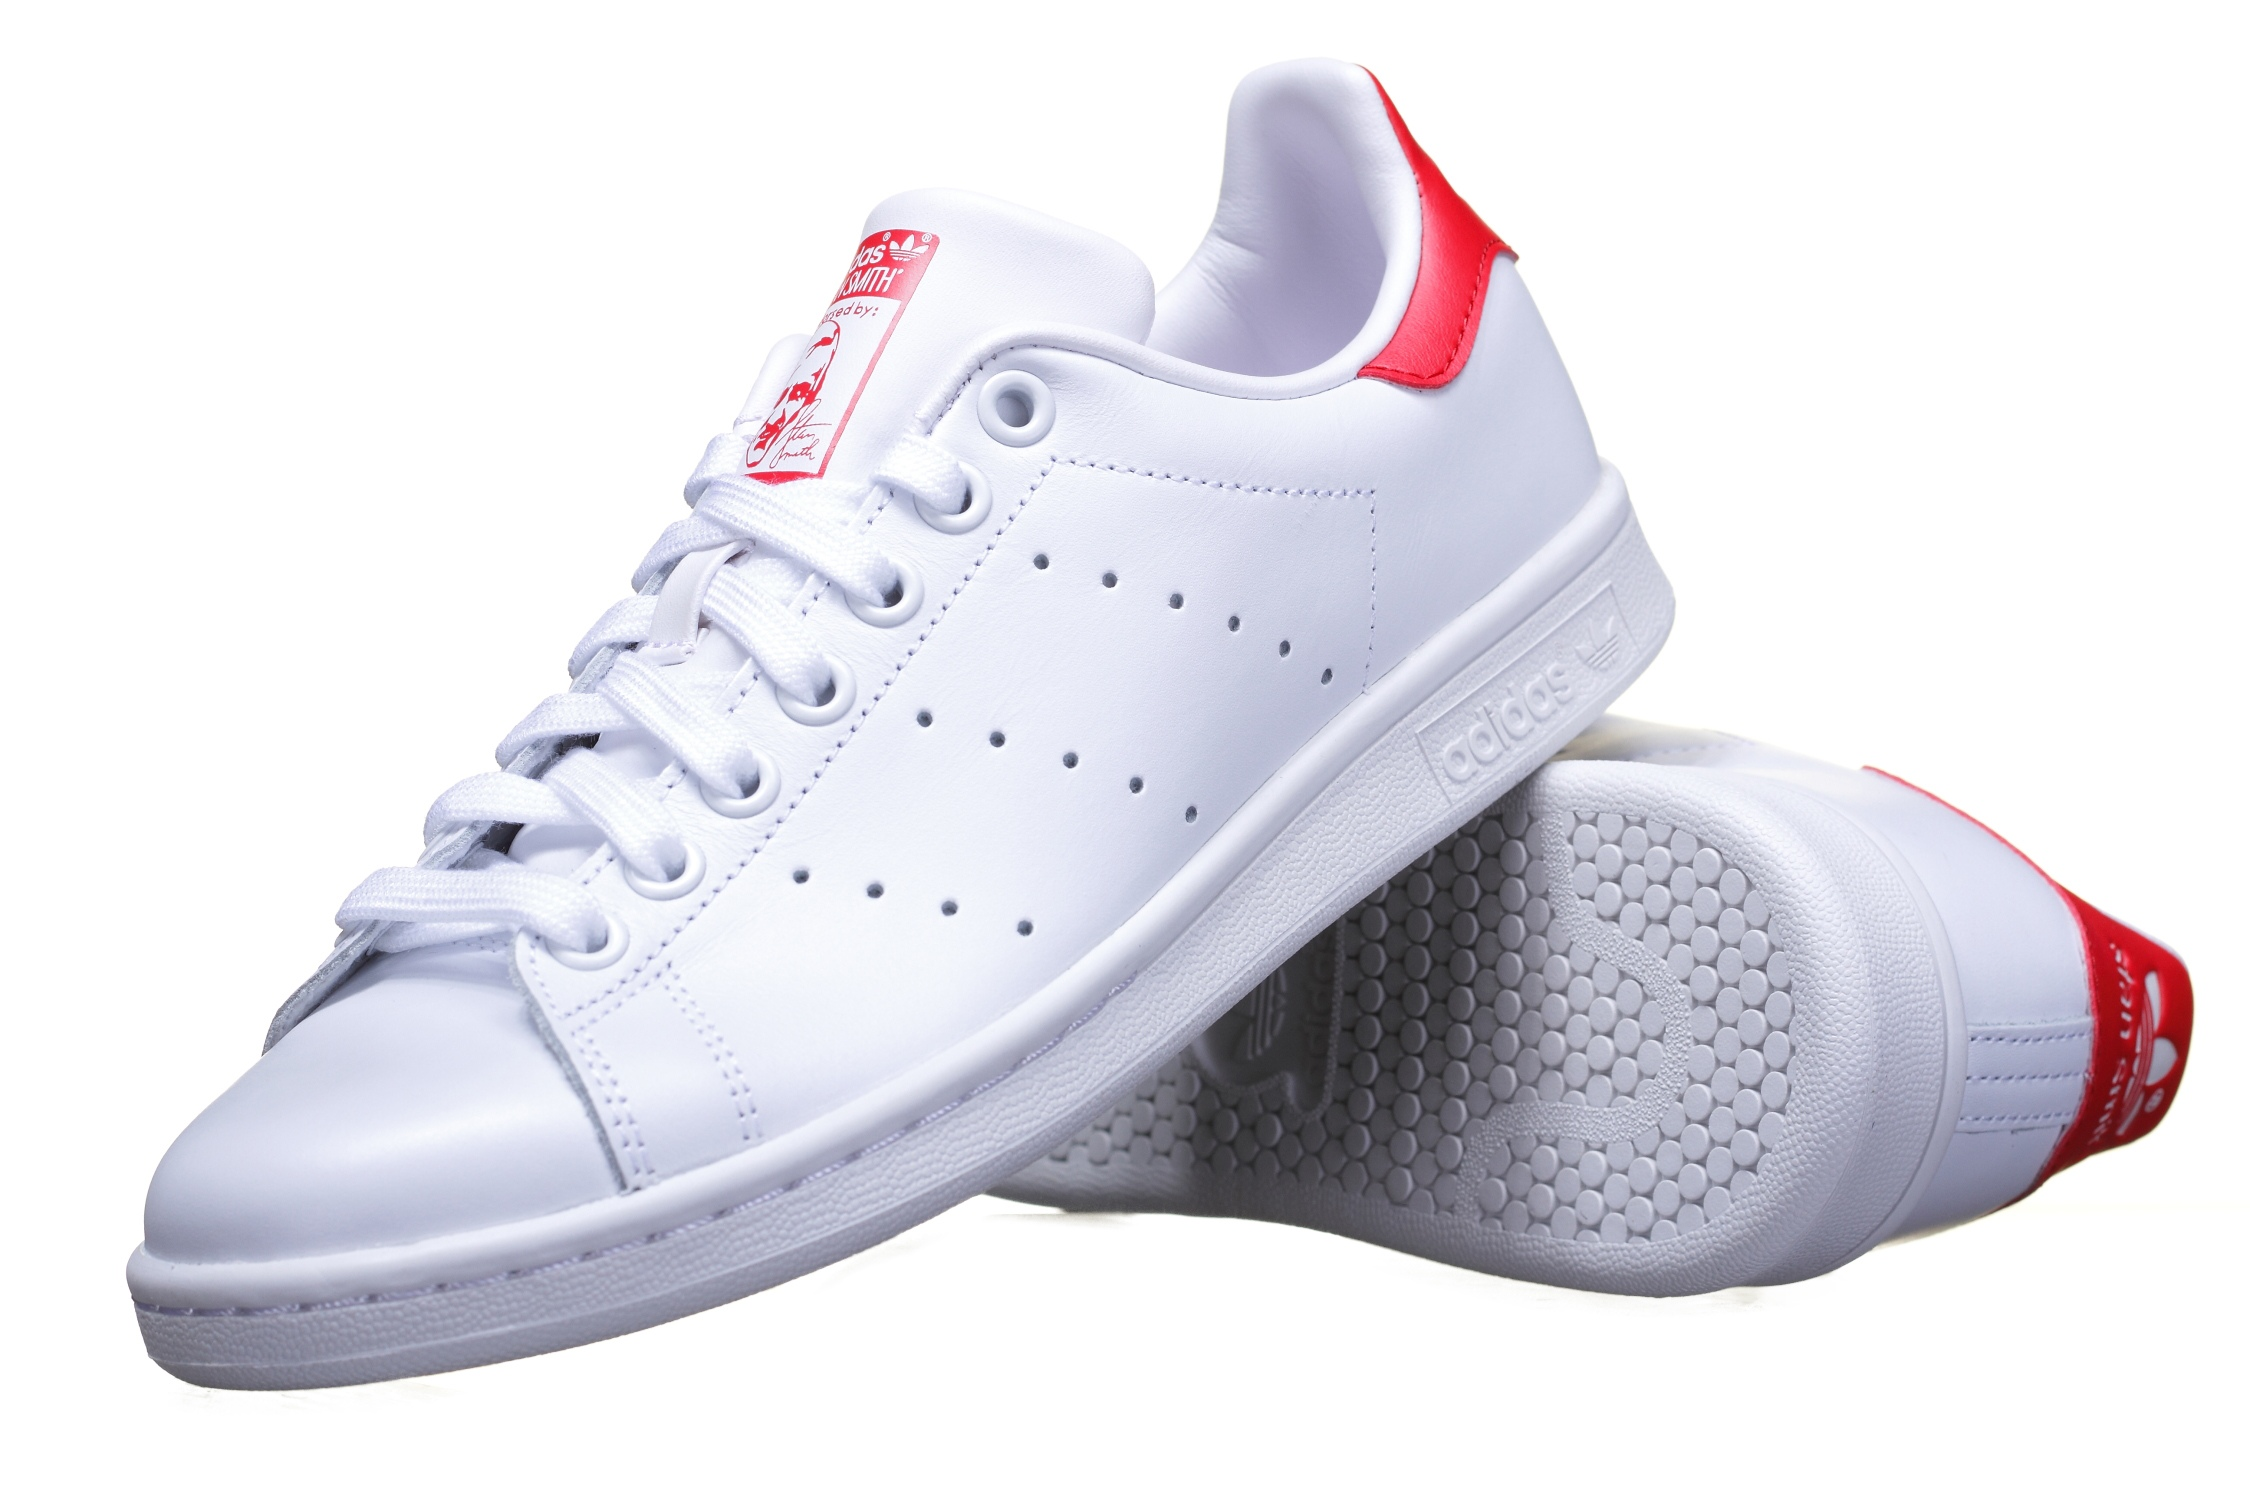 http://www.leadermode.com/92036/adidas-stan-smith-m20326-blanc-rouge.jpg